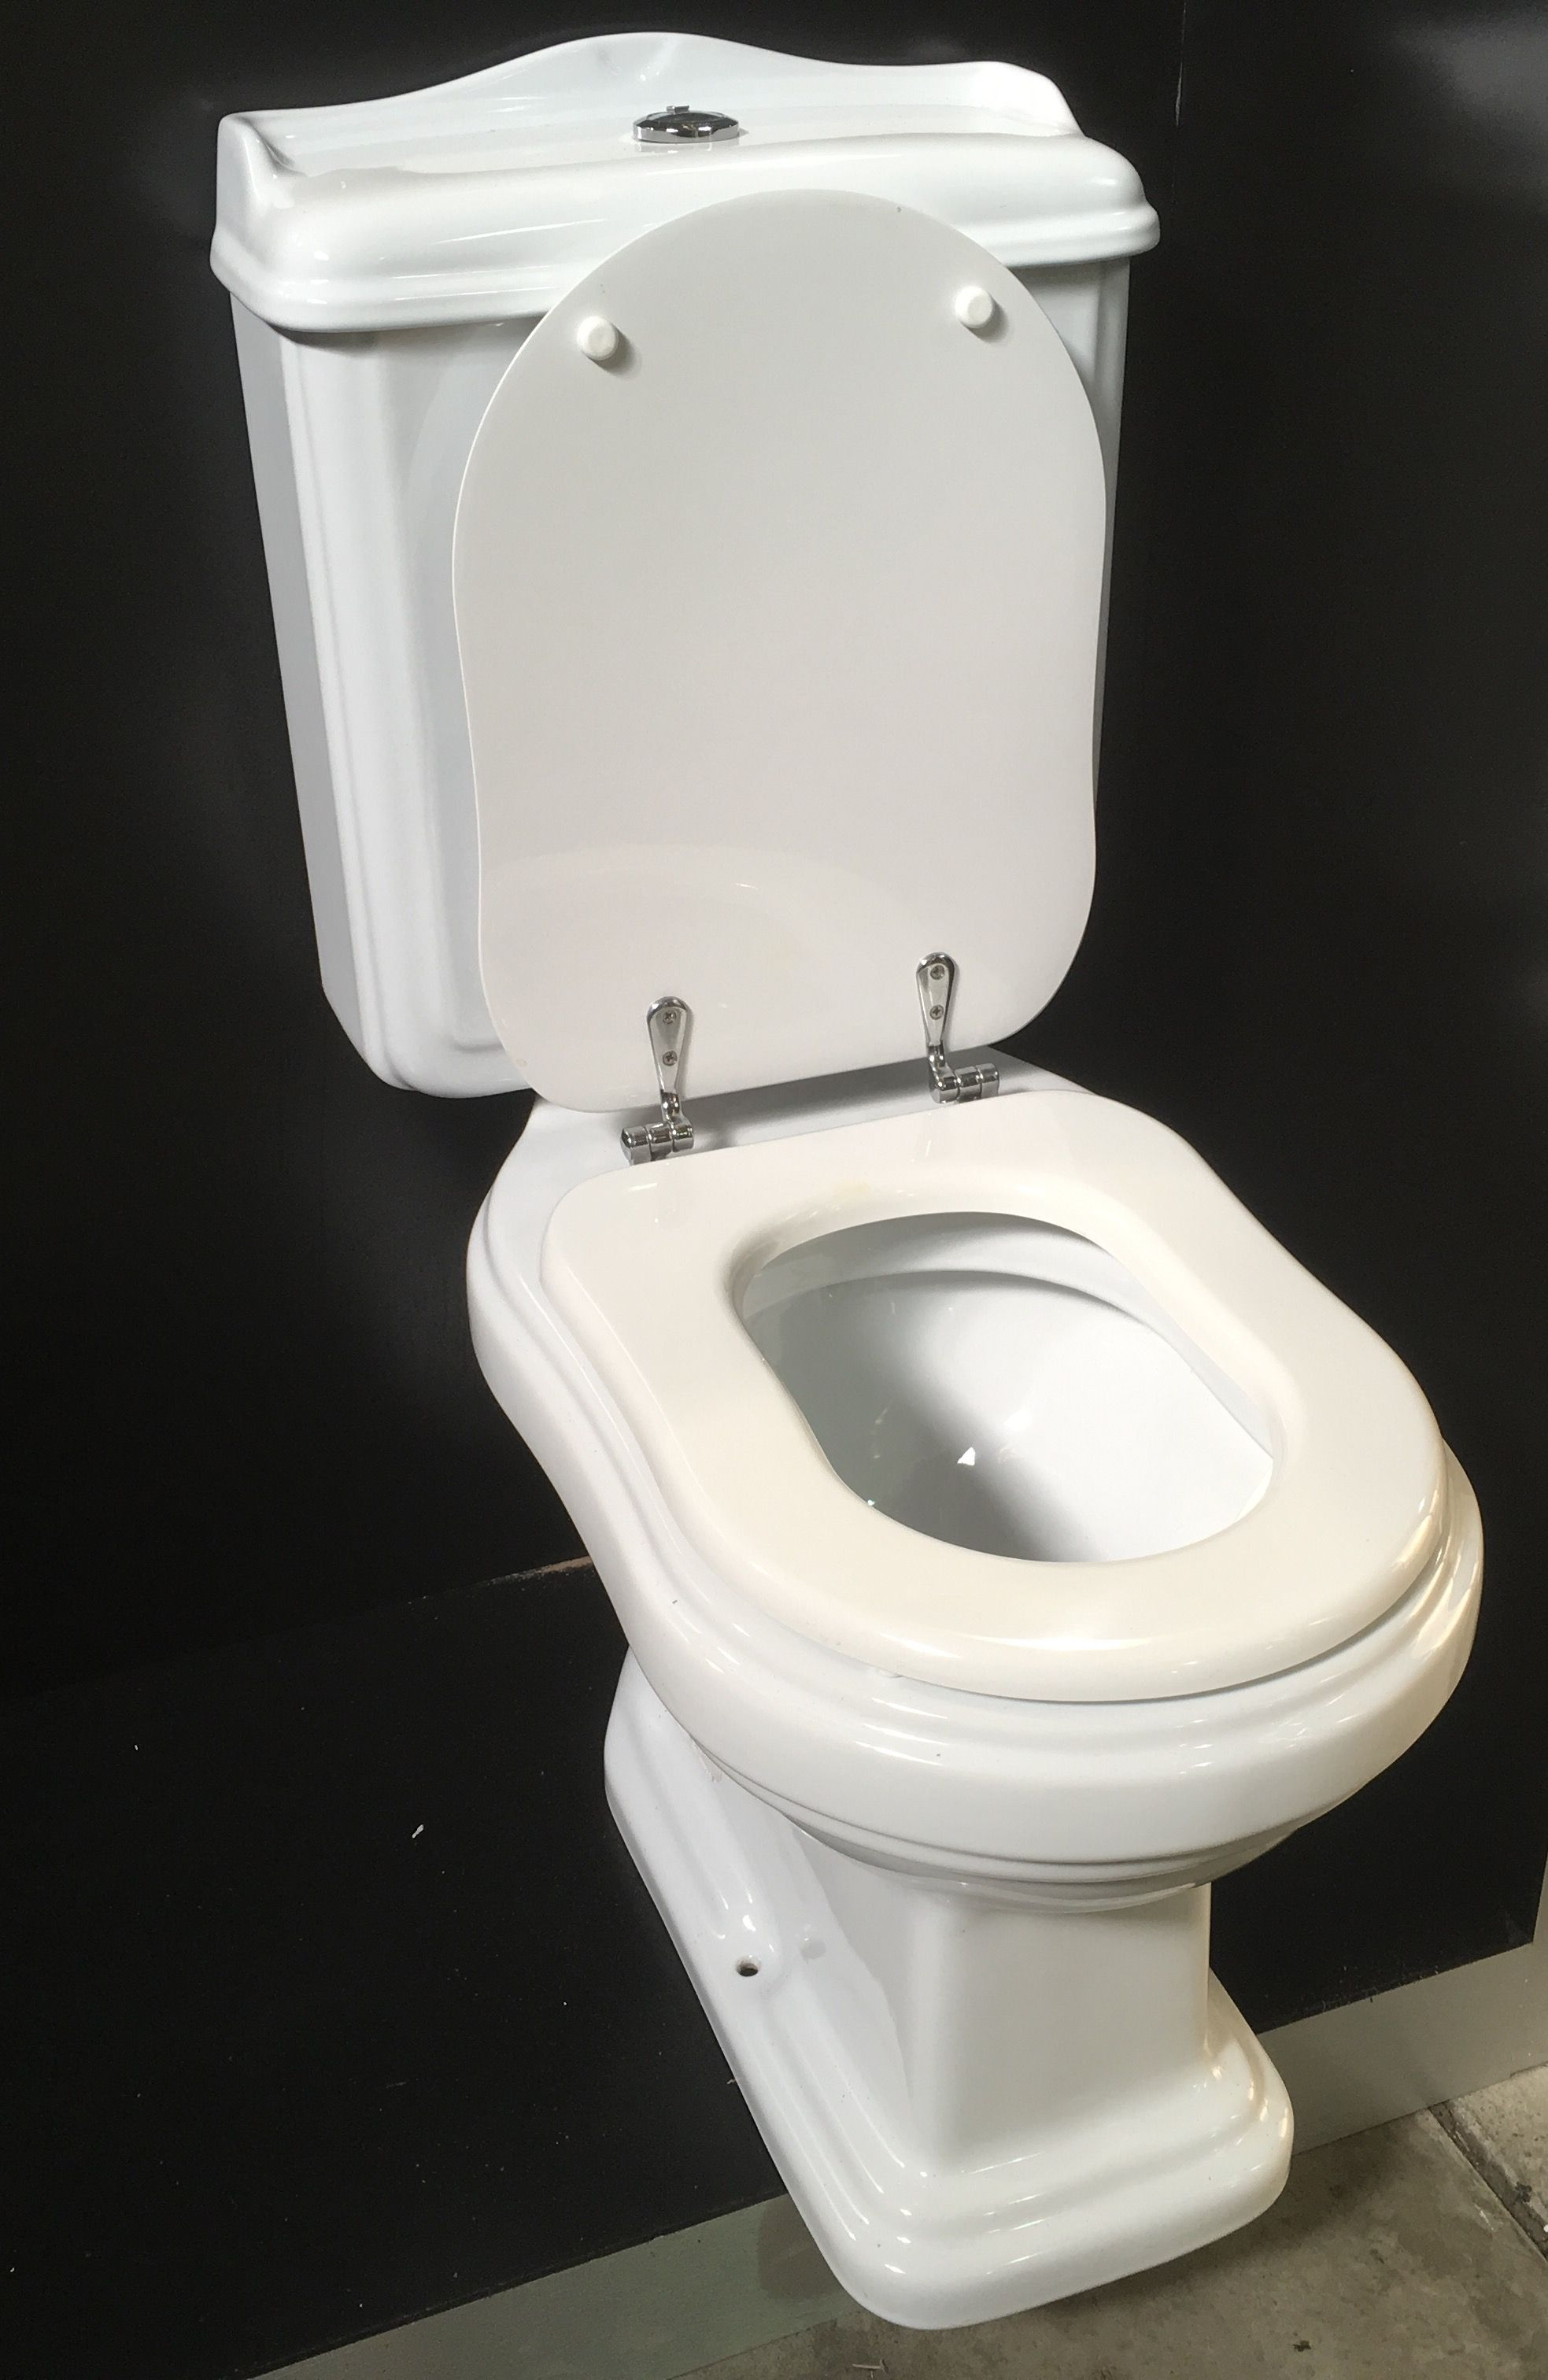 The styling of this heritage style toilet would suit an Art Deco ...